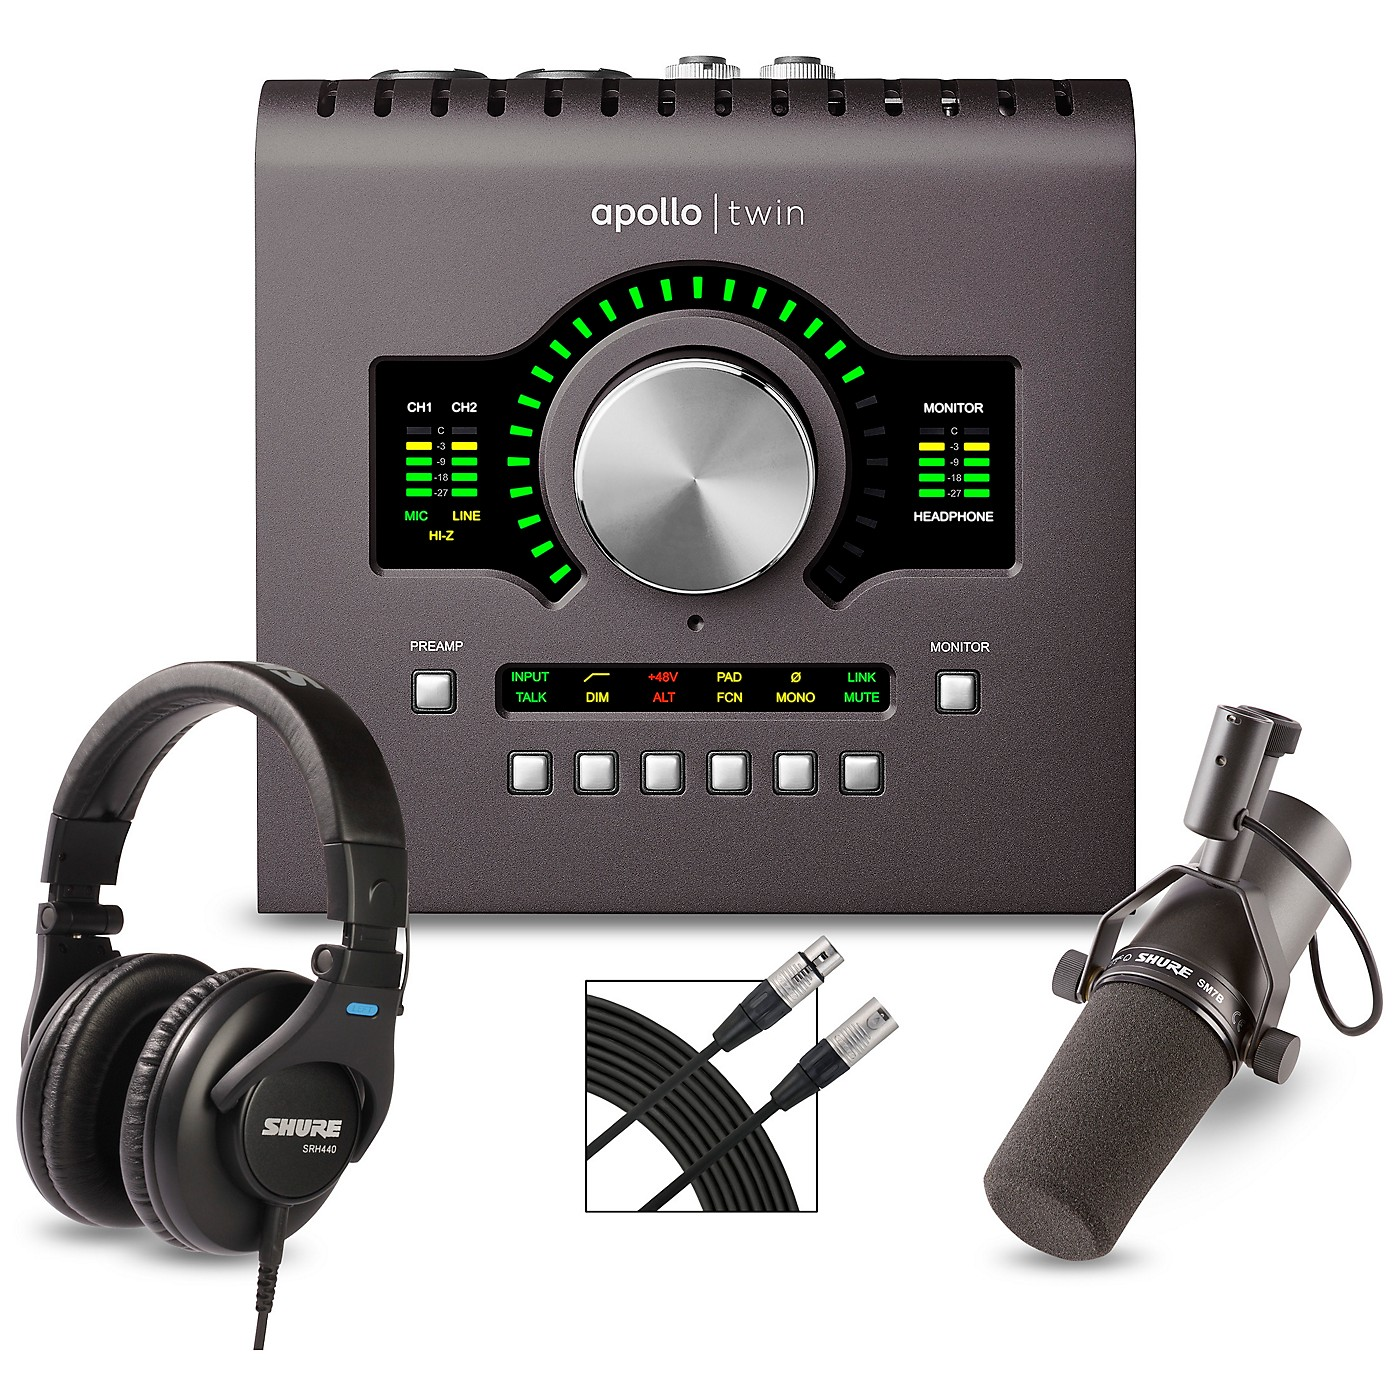 Universal Audio Apollo Twin MKII DUO Heritage Edition Interface With Shure SM7B, SRH 440 and Mic Cable thumbnail